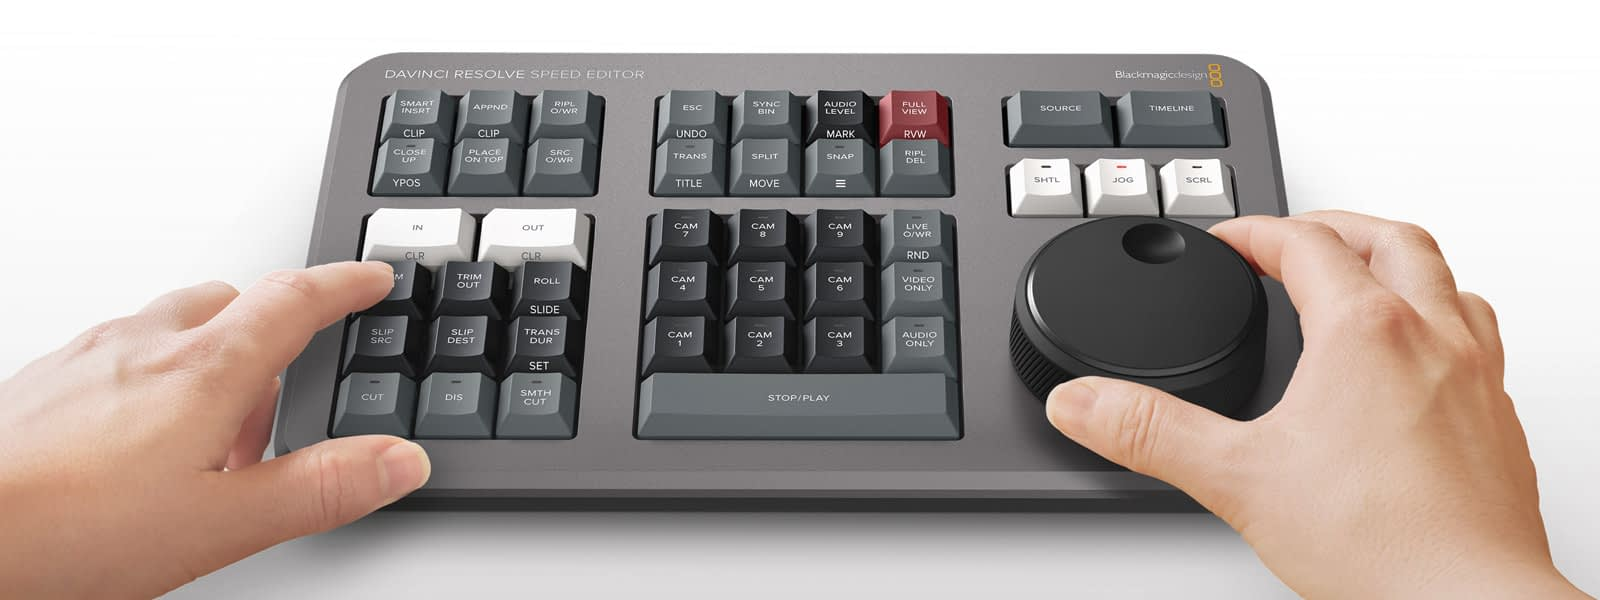 DaVinci Speed Editor Keyboard with Hands